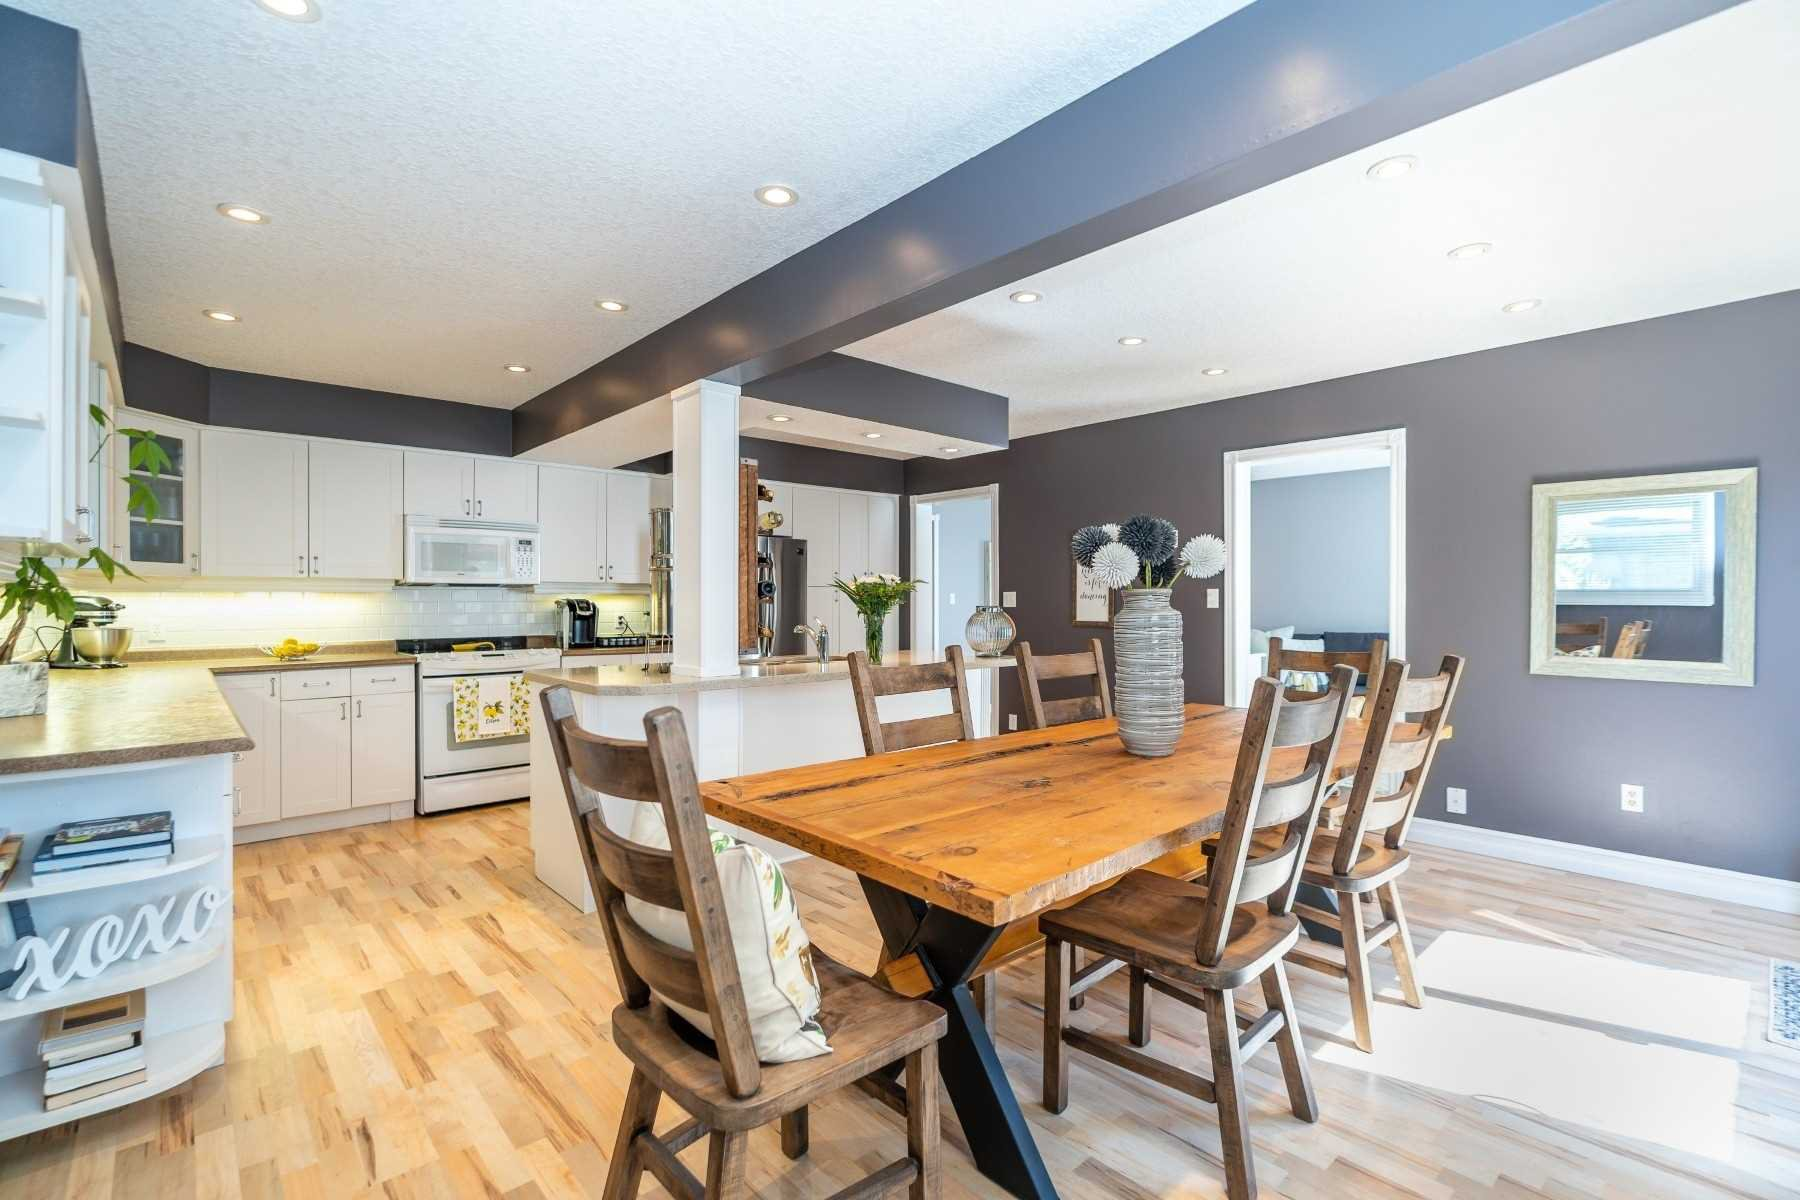 Photo 9: Photos: 1153 Snowberry Court in Oshawa: Pinecrest House (2-Storey) for sale : MLS®# E4794796